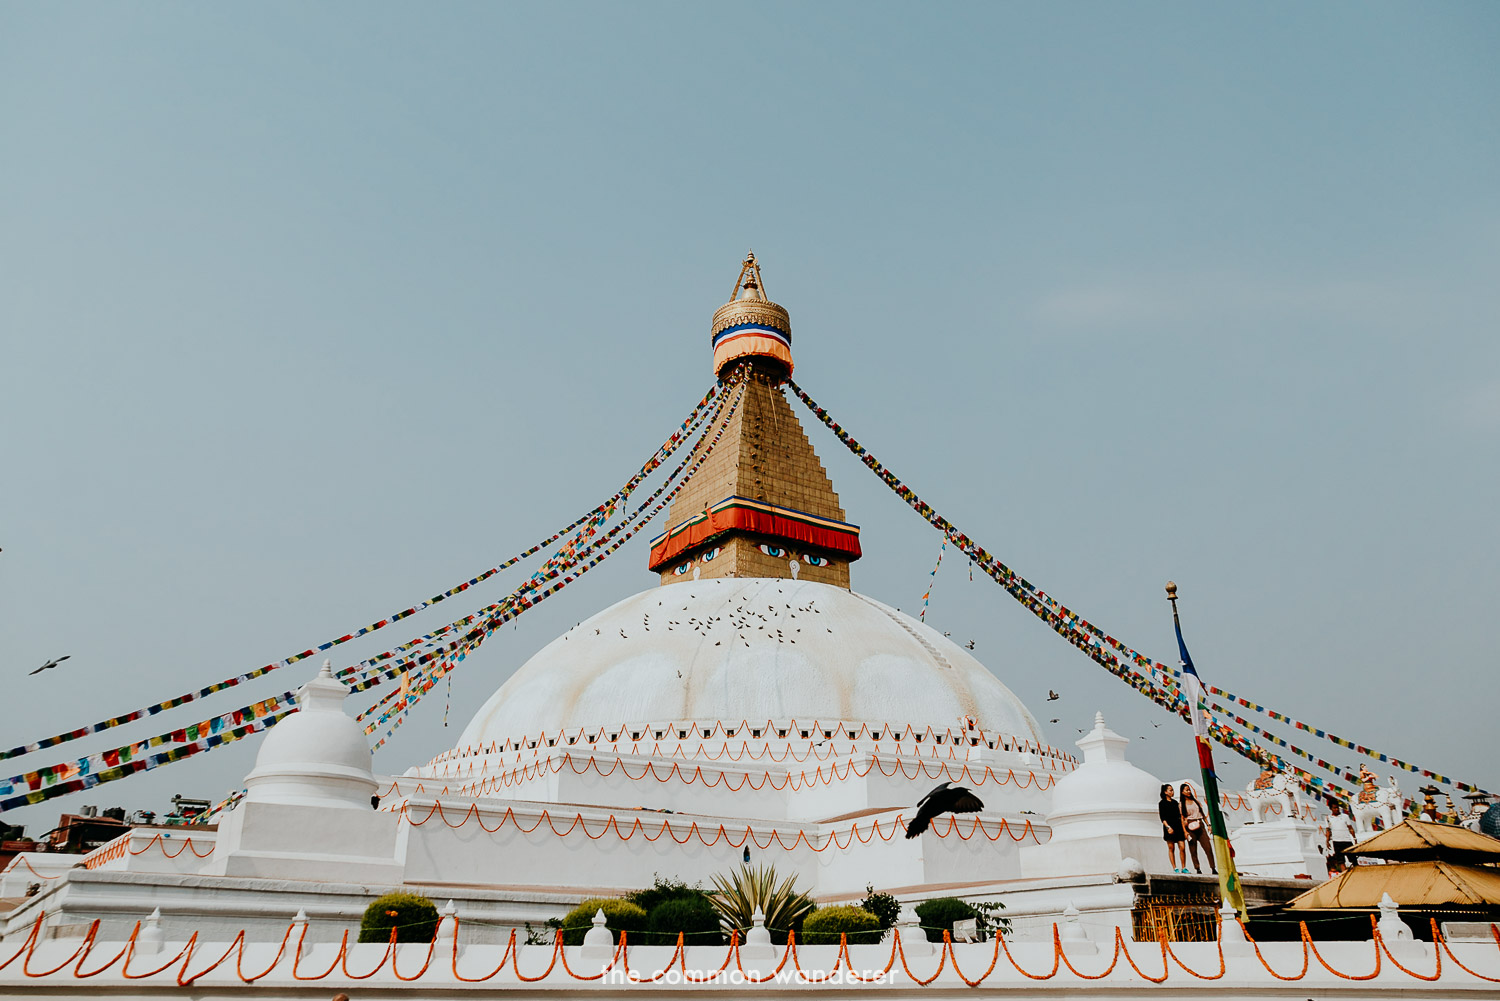 Where to stay in Kathmandu? Close to Boudhanath Stupa